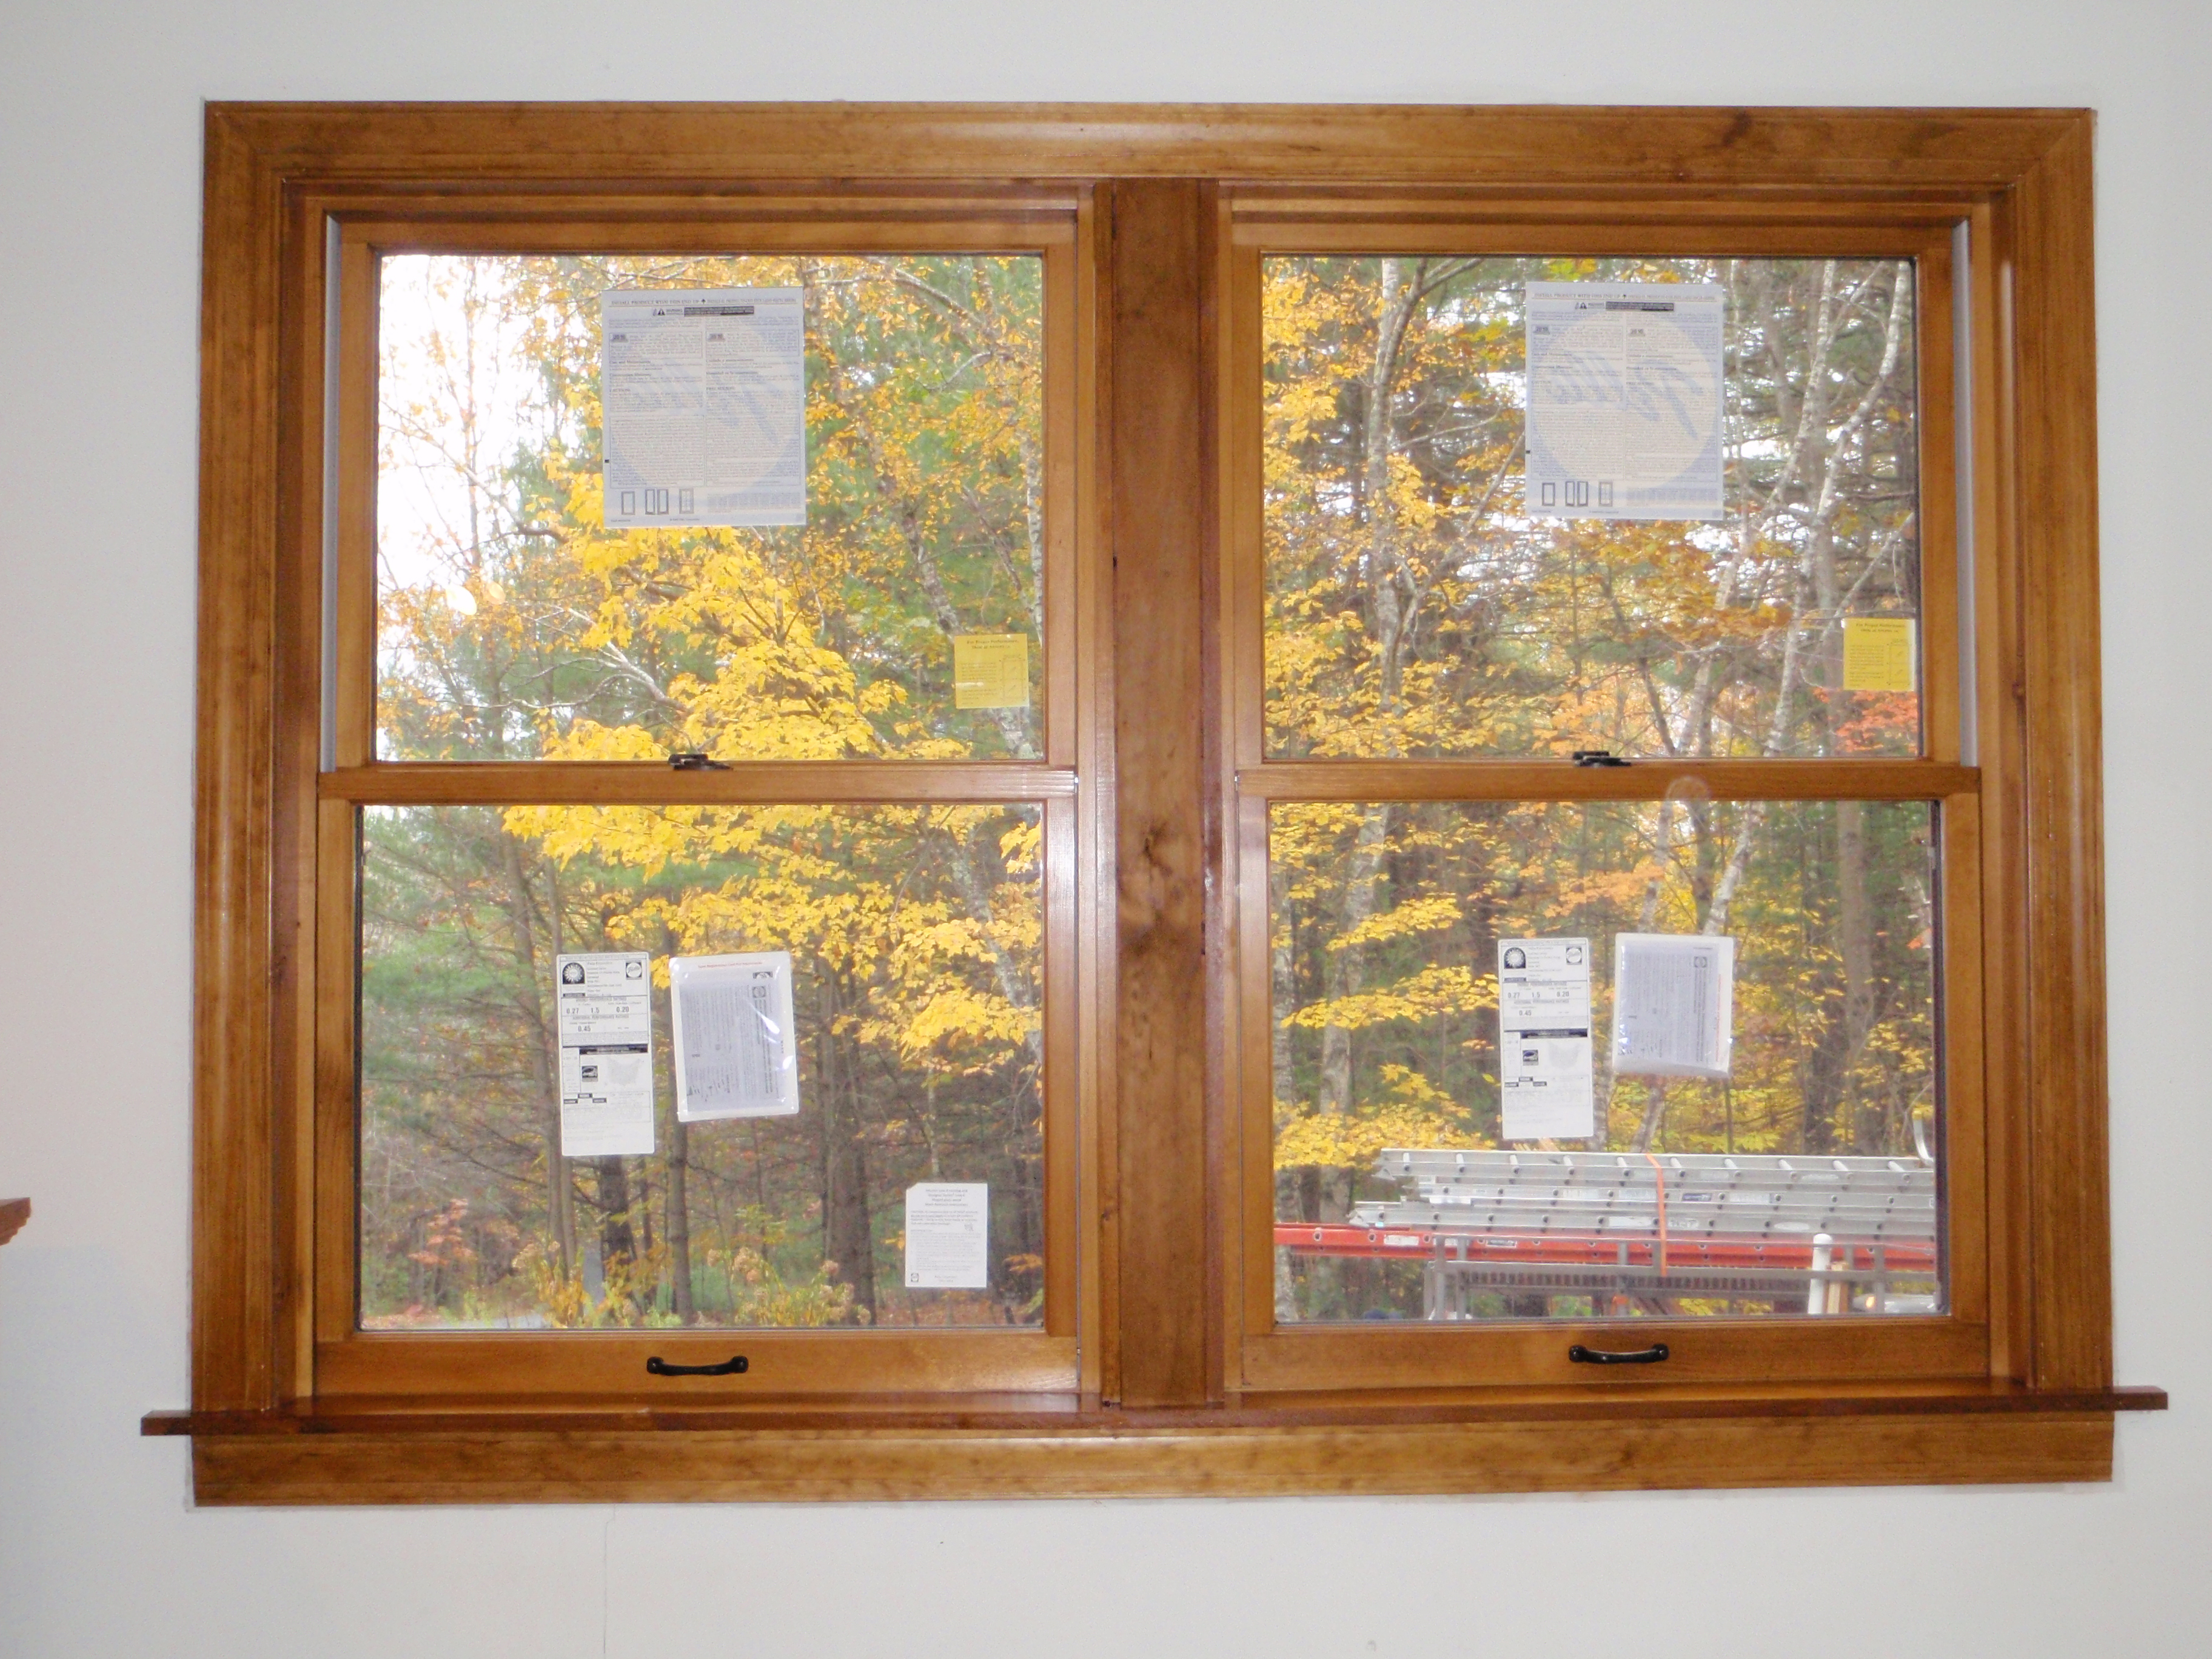 Navco cohoes ny 12047 angies list for House windows company